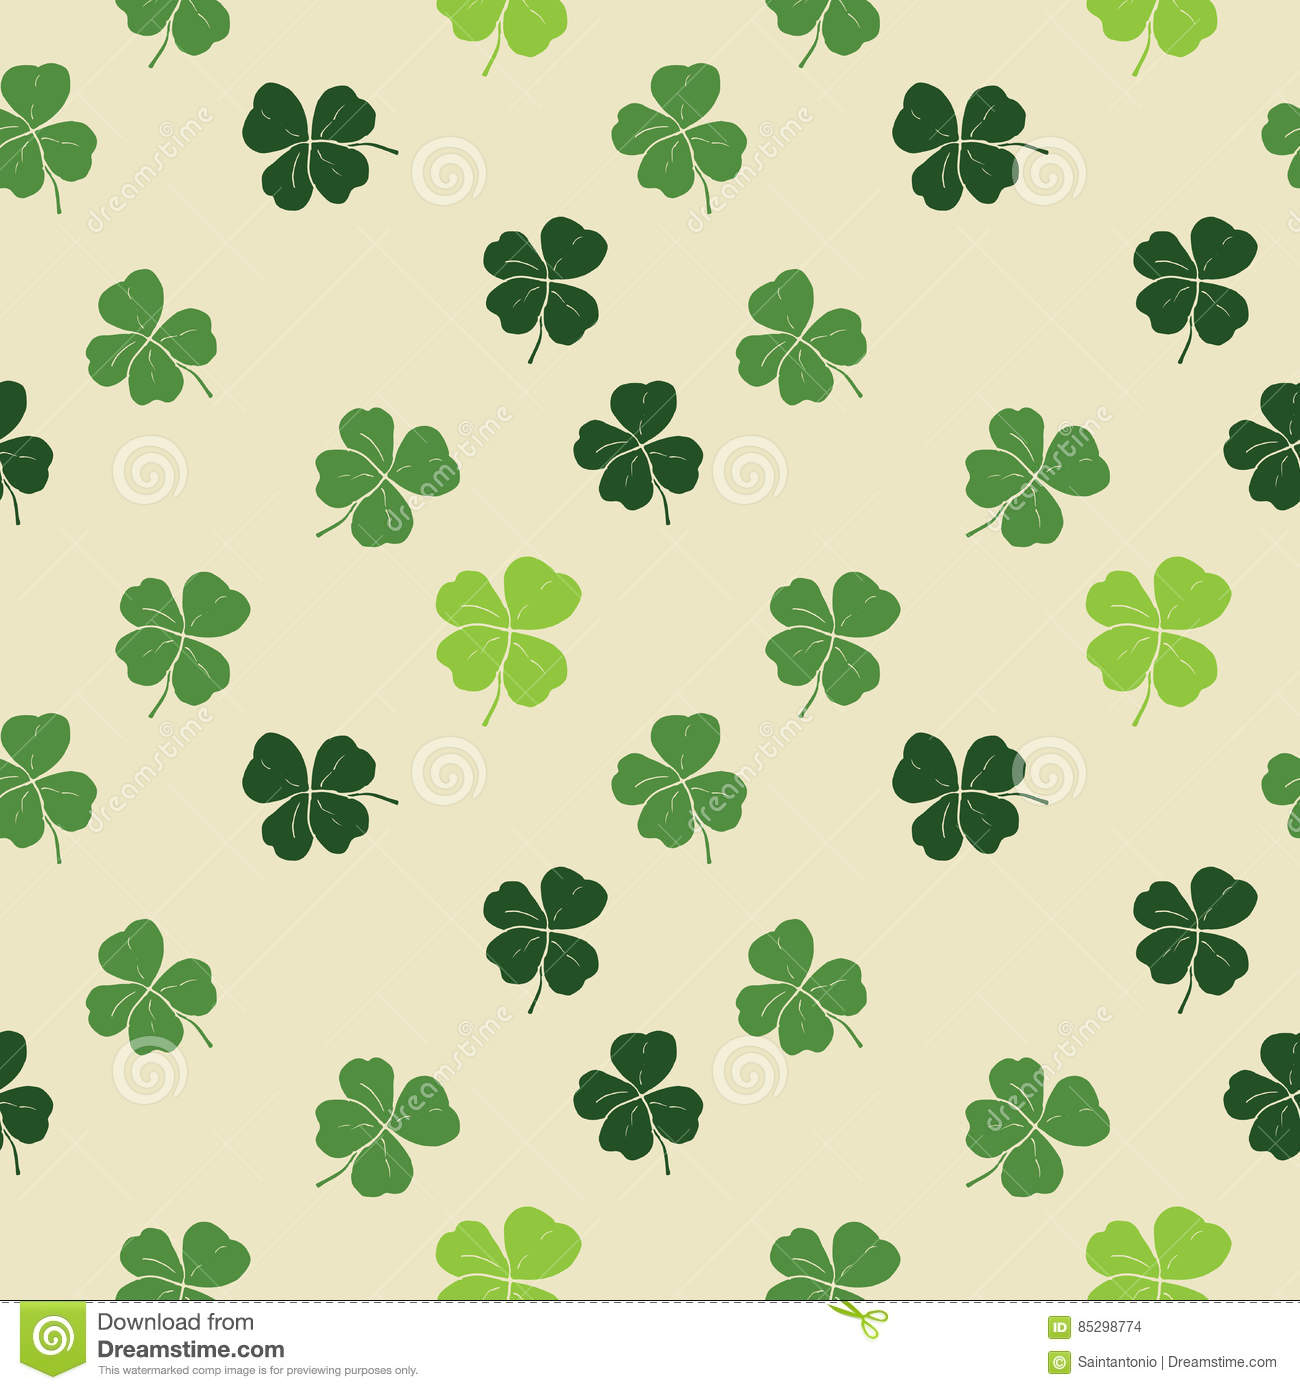 shamrock pattern wallpaper 1366x768 - photo #16